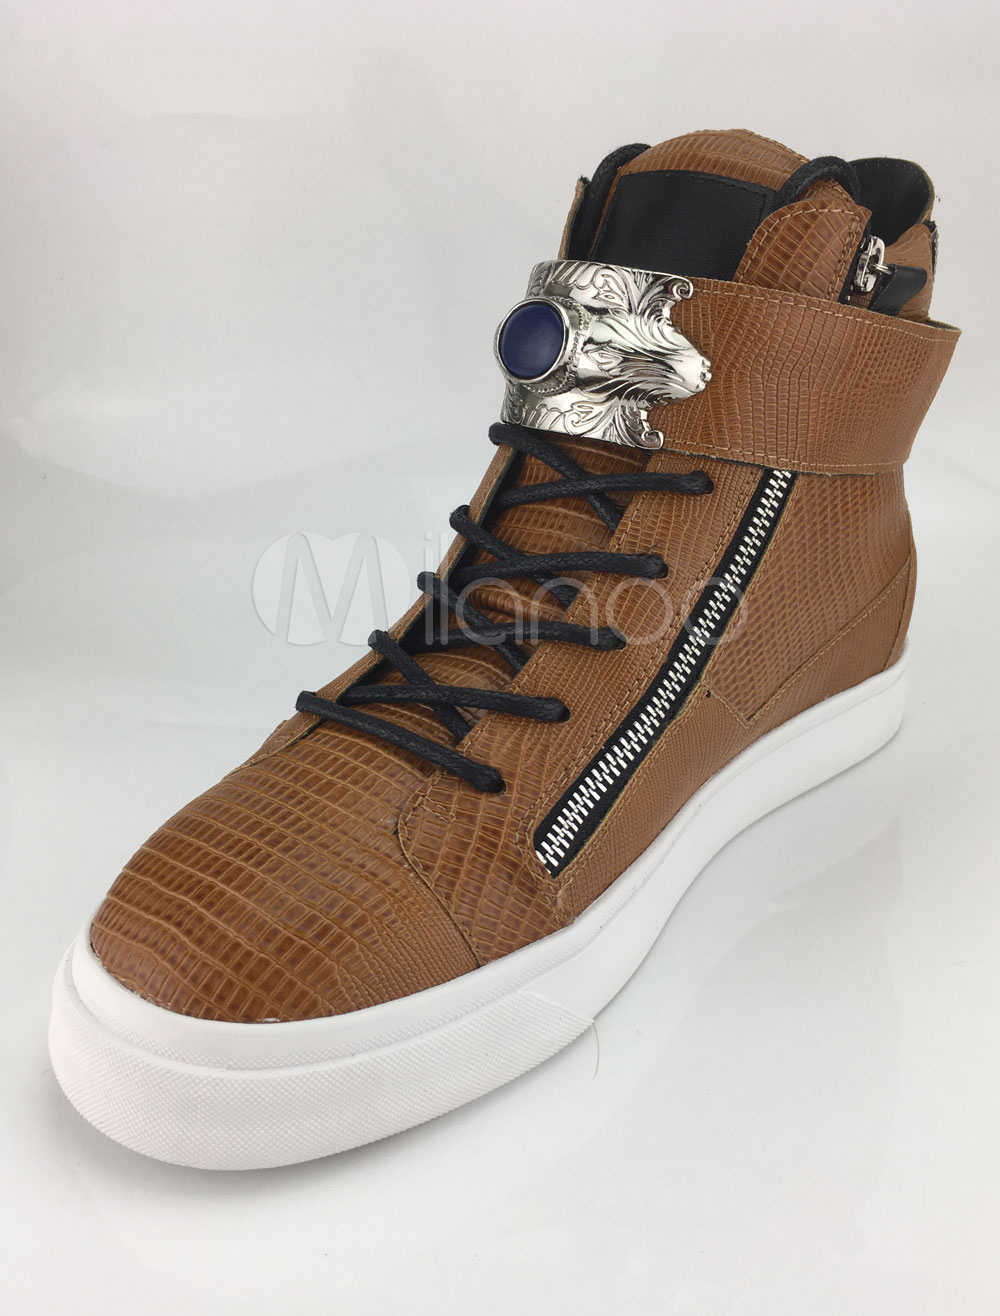 Yellow Zipper Leather Sneakers for Men